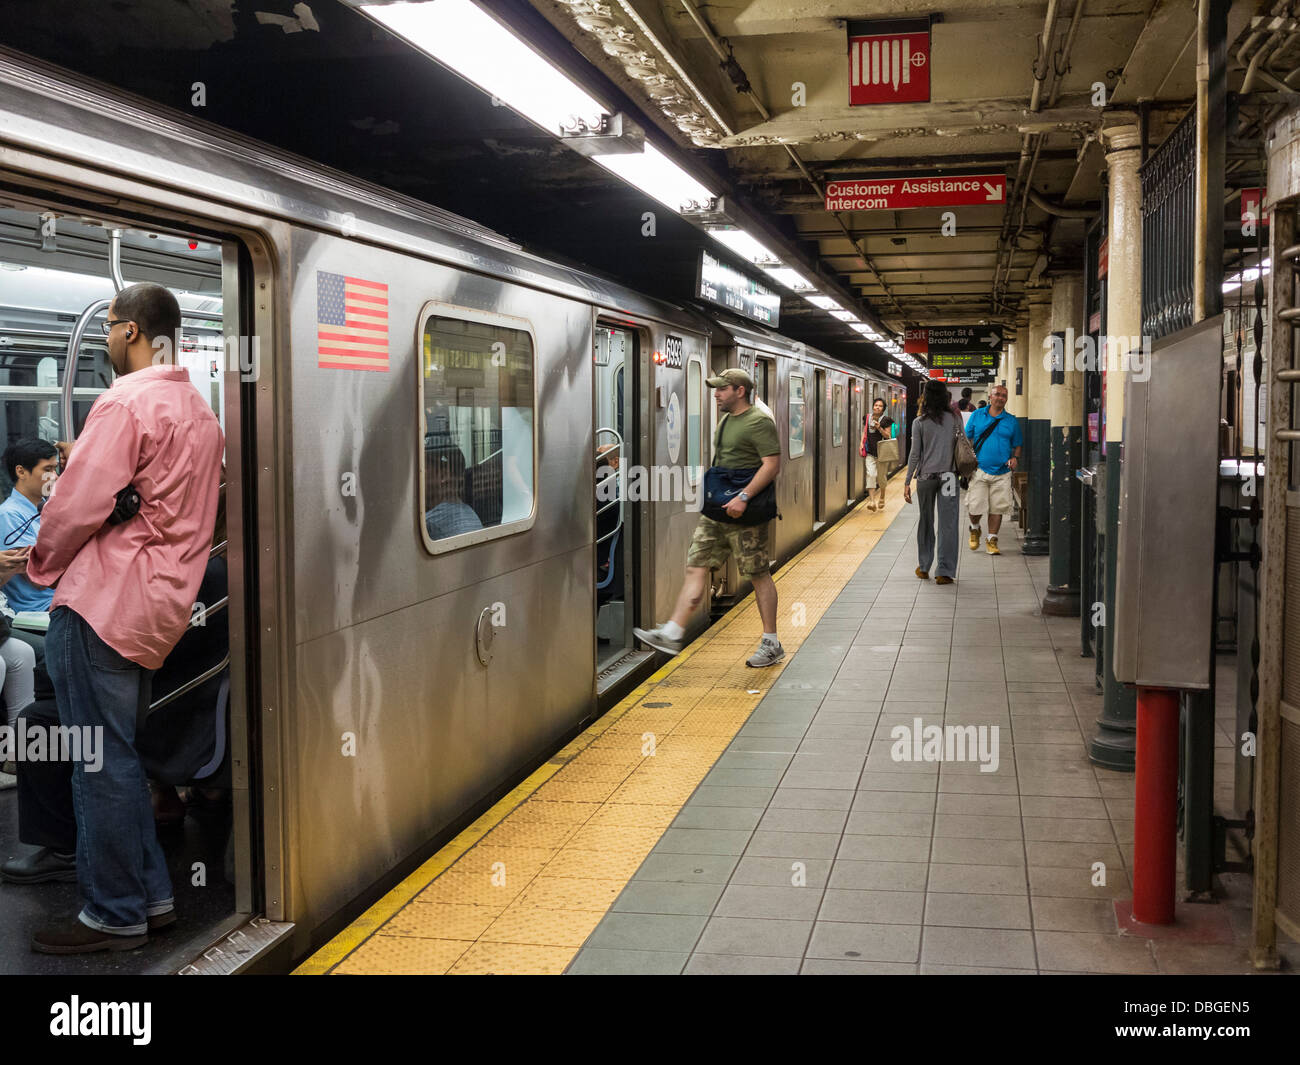 New York City subway station platform and train - Stock Image